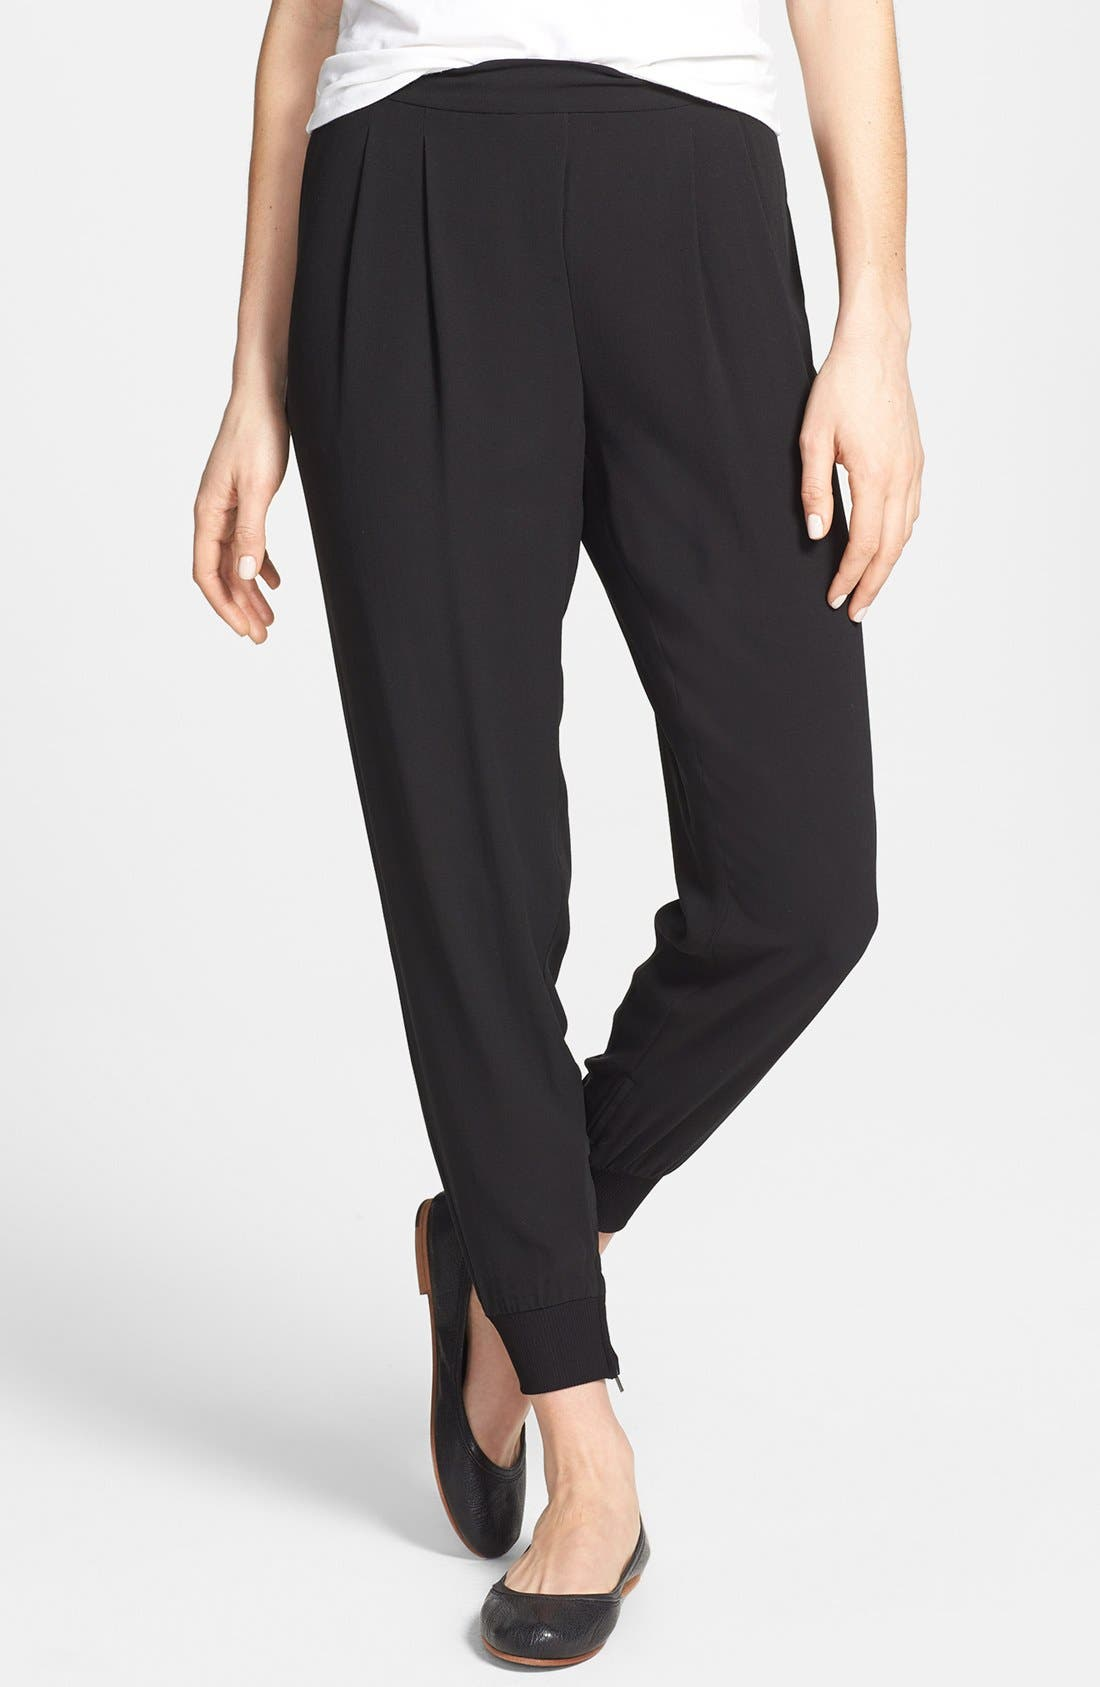 Alternate Image 1 Selected - Eileen Fisher Cuffed Silk Ankle Pants (Regular & Petite)(Online Only)